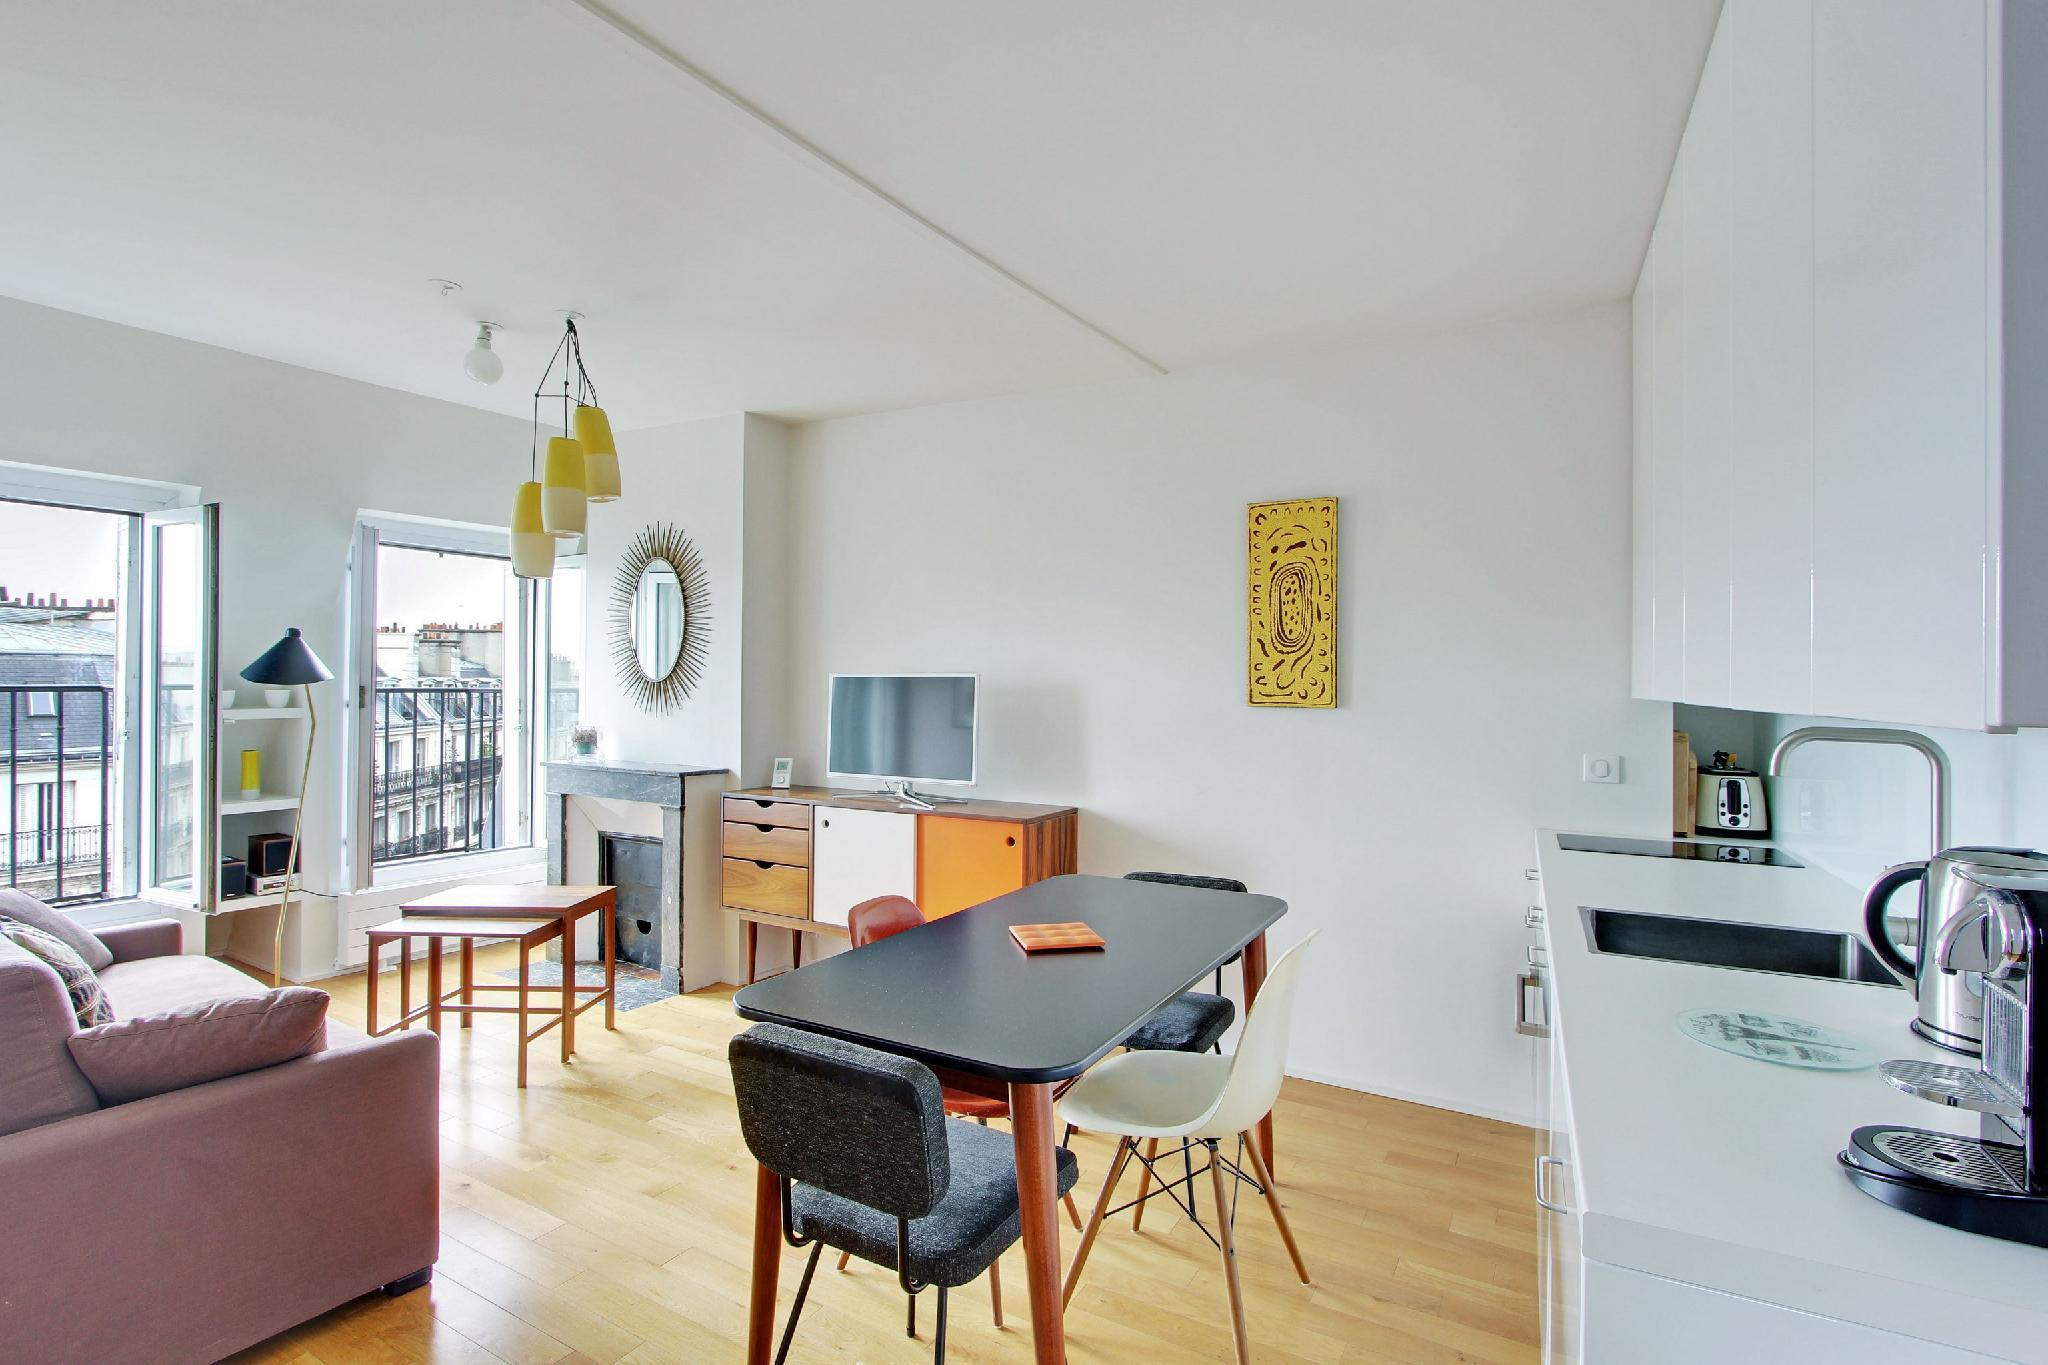 109083 - Sophisticated apartment near the charming Montmartre